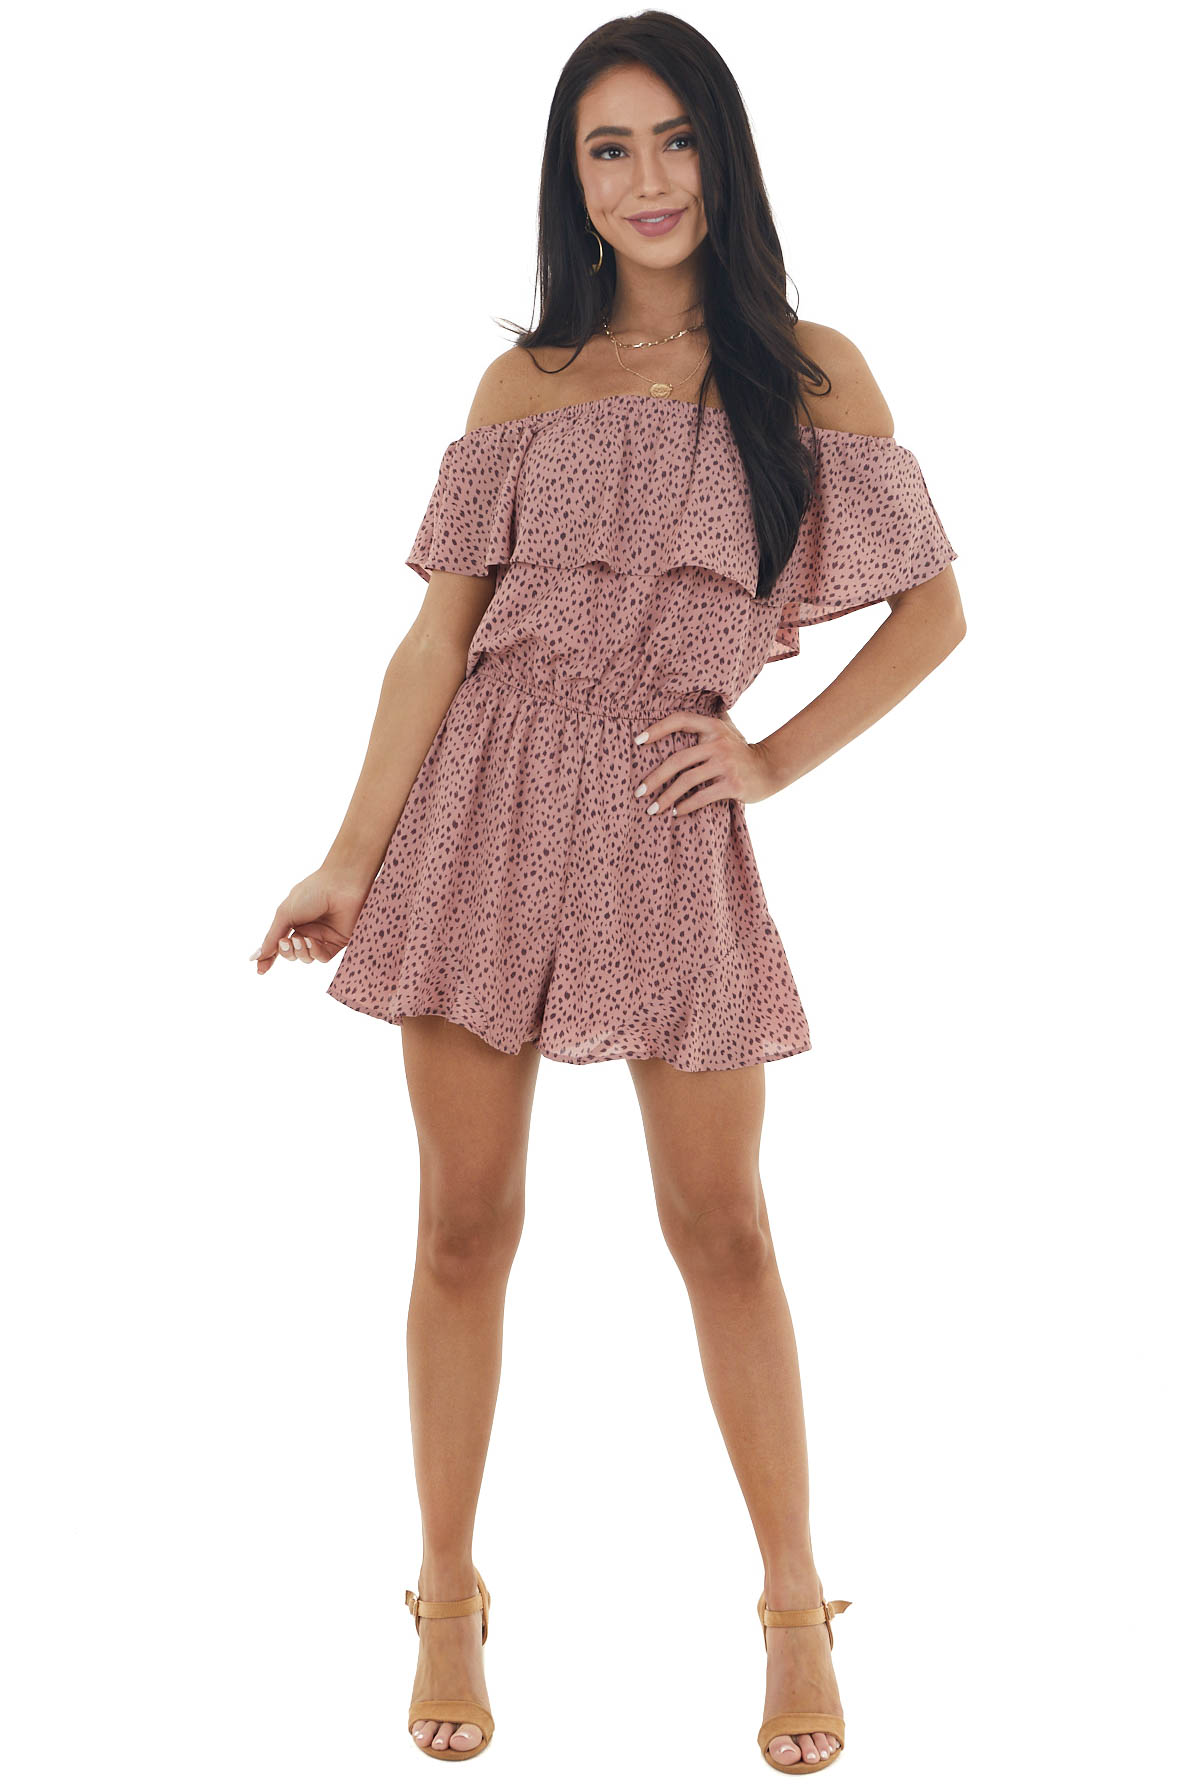 Dusty Rose Cheetah Print Ruffle Off the Shoulder Romper